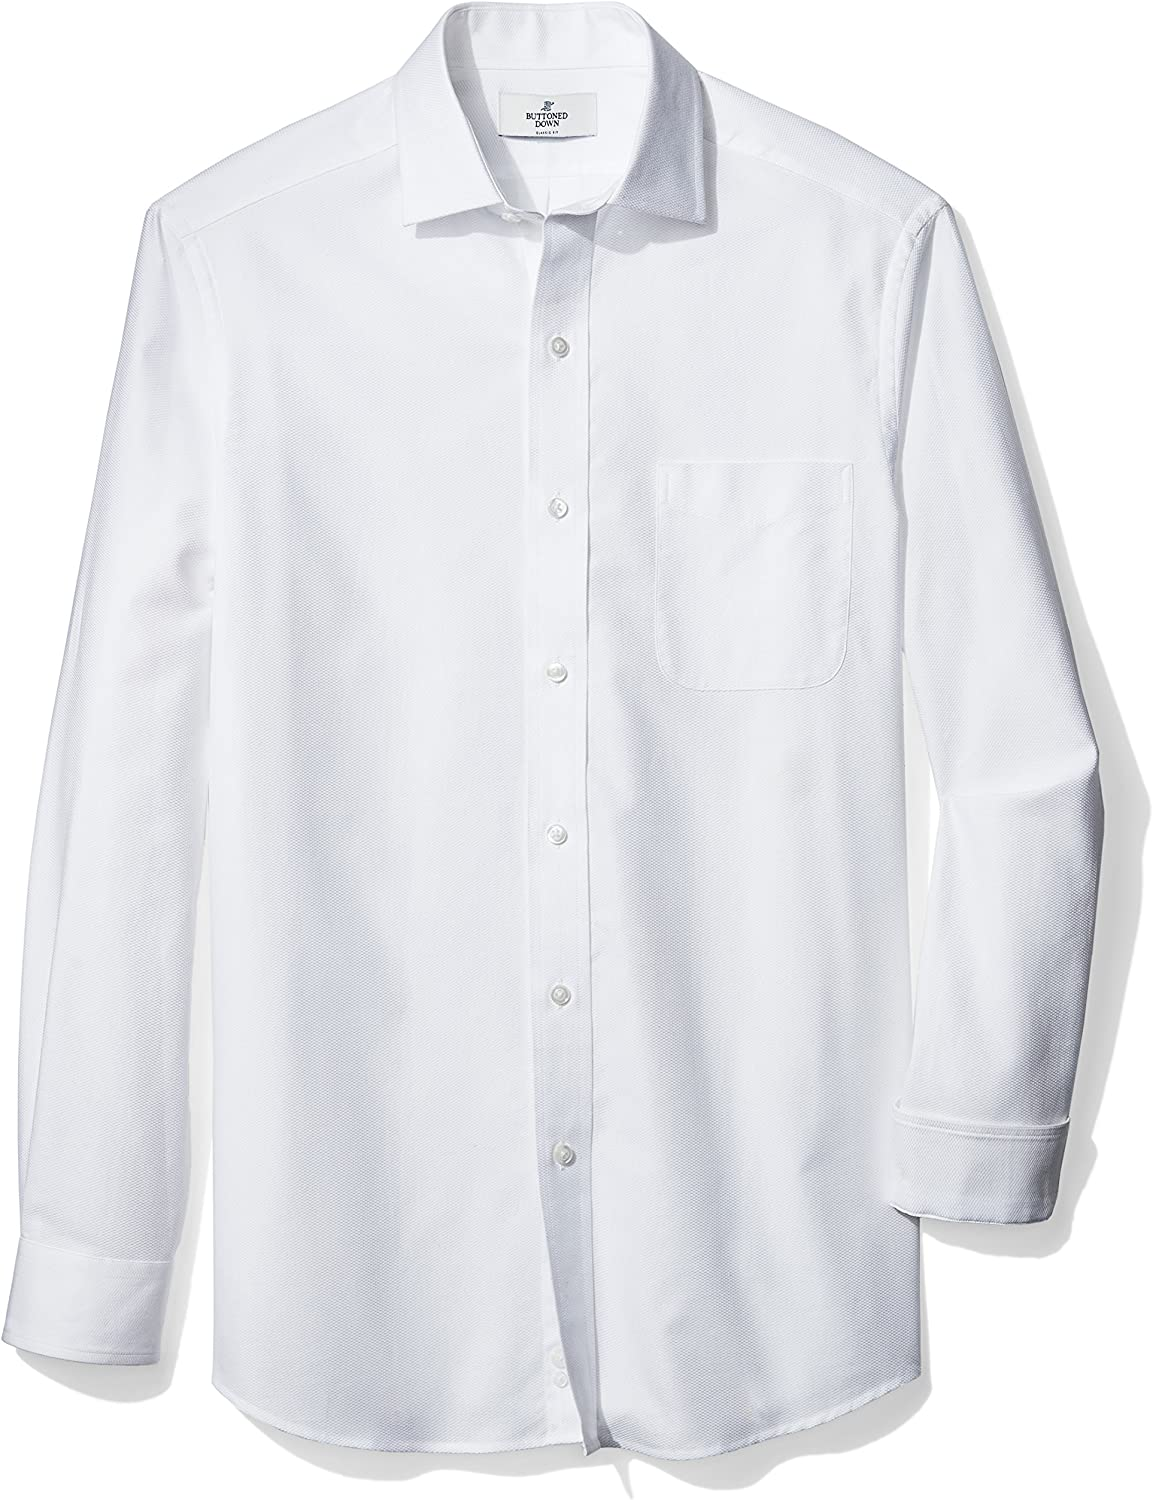 BUTTONED DOWN Men's Classic Fit Spread-Collar Supima Cotton Dress Casual Shirt: Clothing